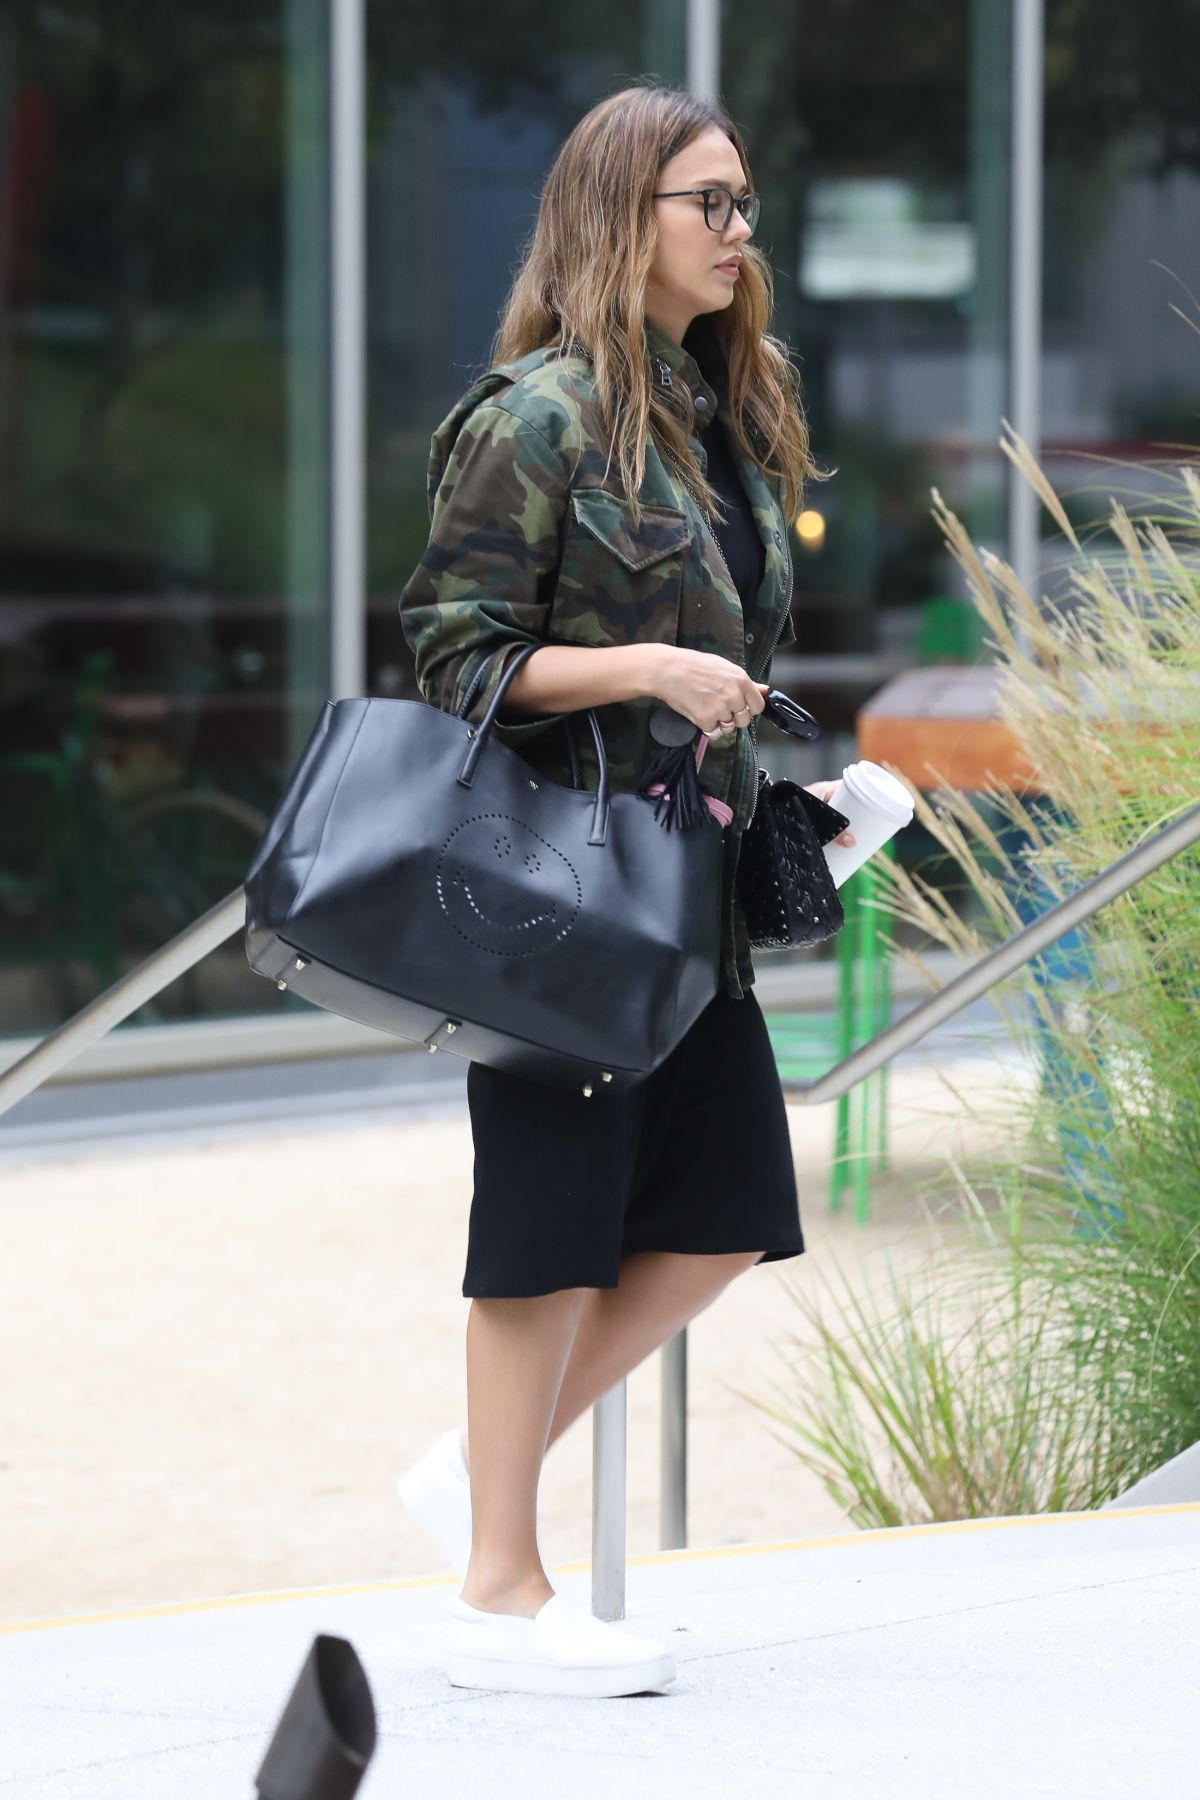 https://i0.wp.com/www.hawtcelebs.com/wp-content/uploads/2017/08/jessica-alba-out-and-about-in-los-angeles-08-25-2017_9.jpg